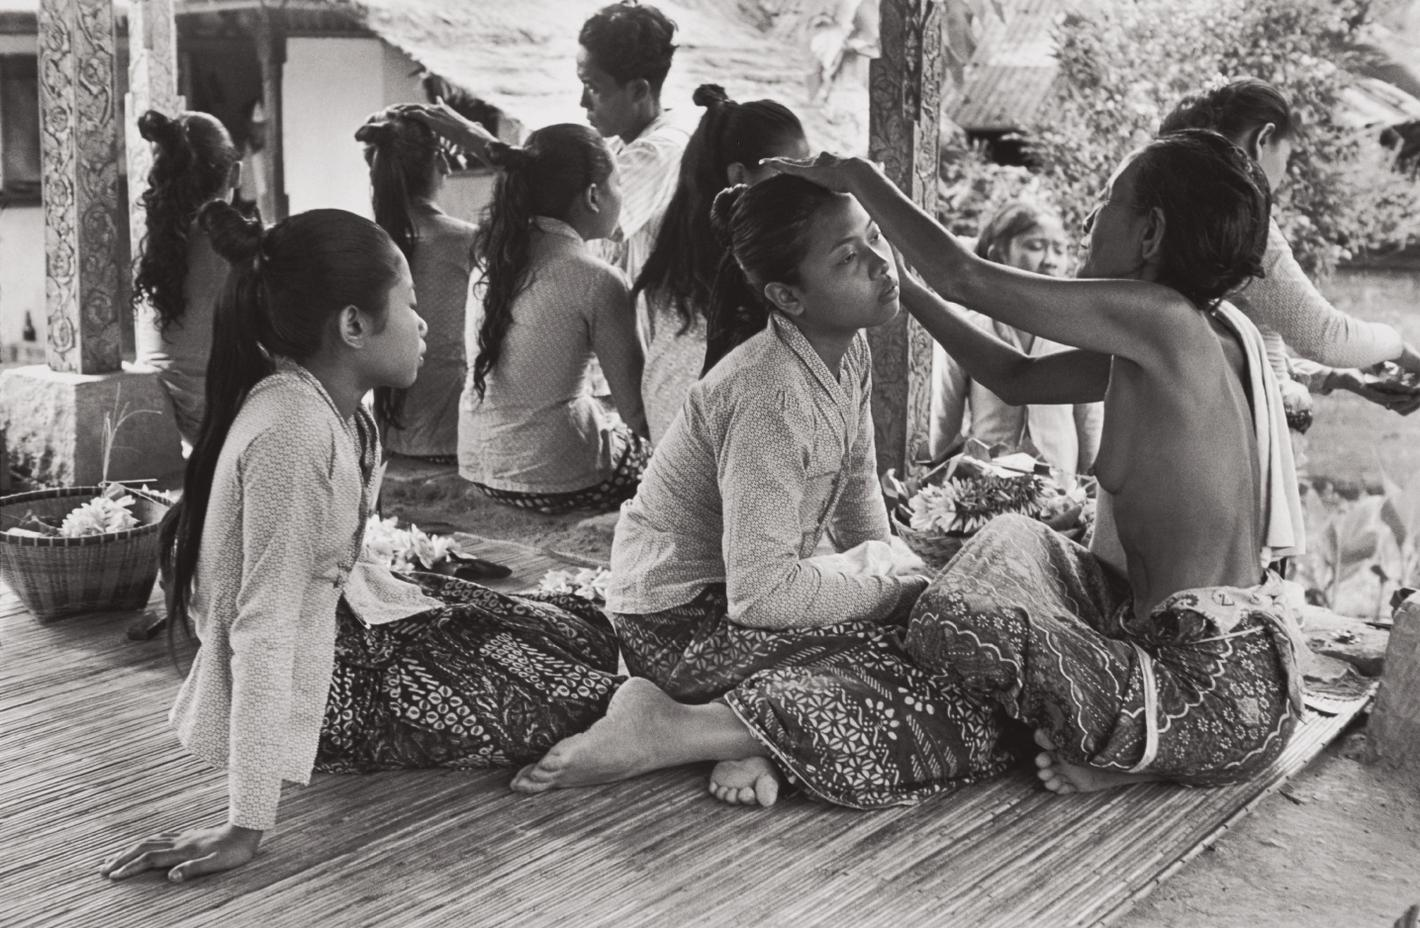 Henri Cartier-Bresson-Preparations For The Baris Dance, Ubud, Bali, Indonesia-1949